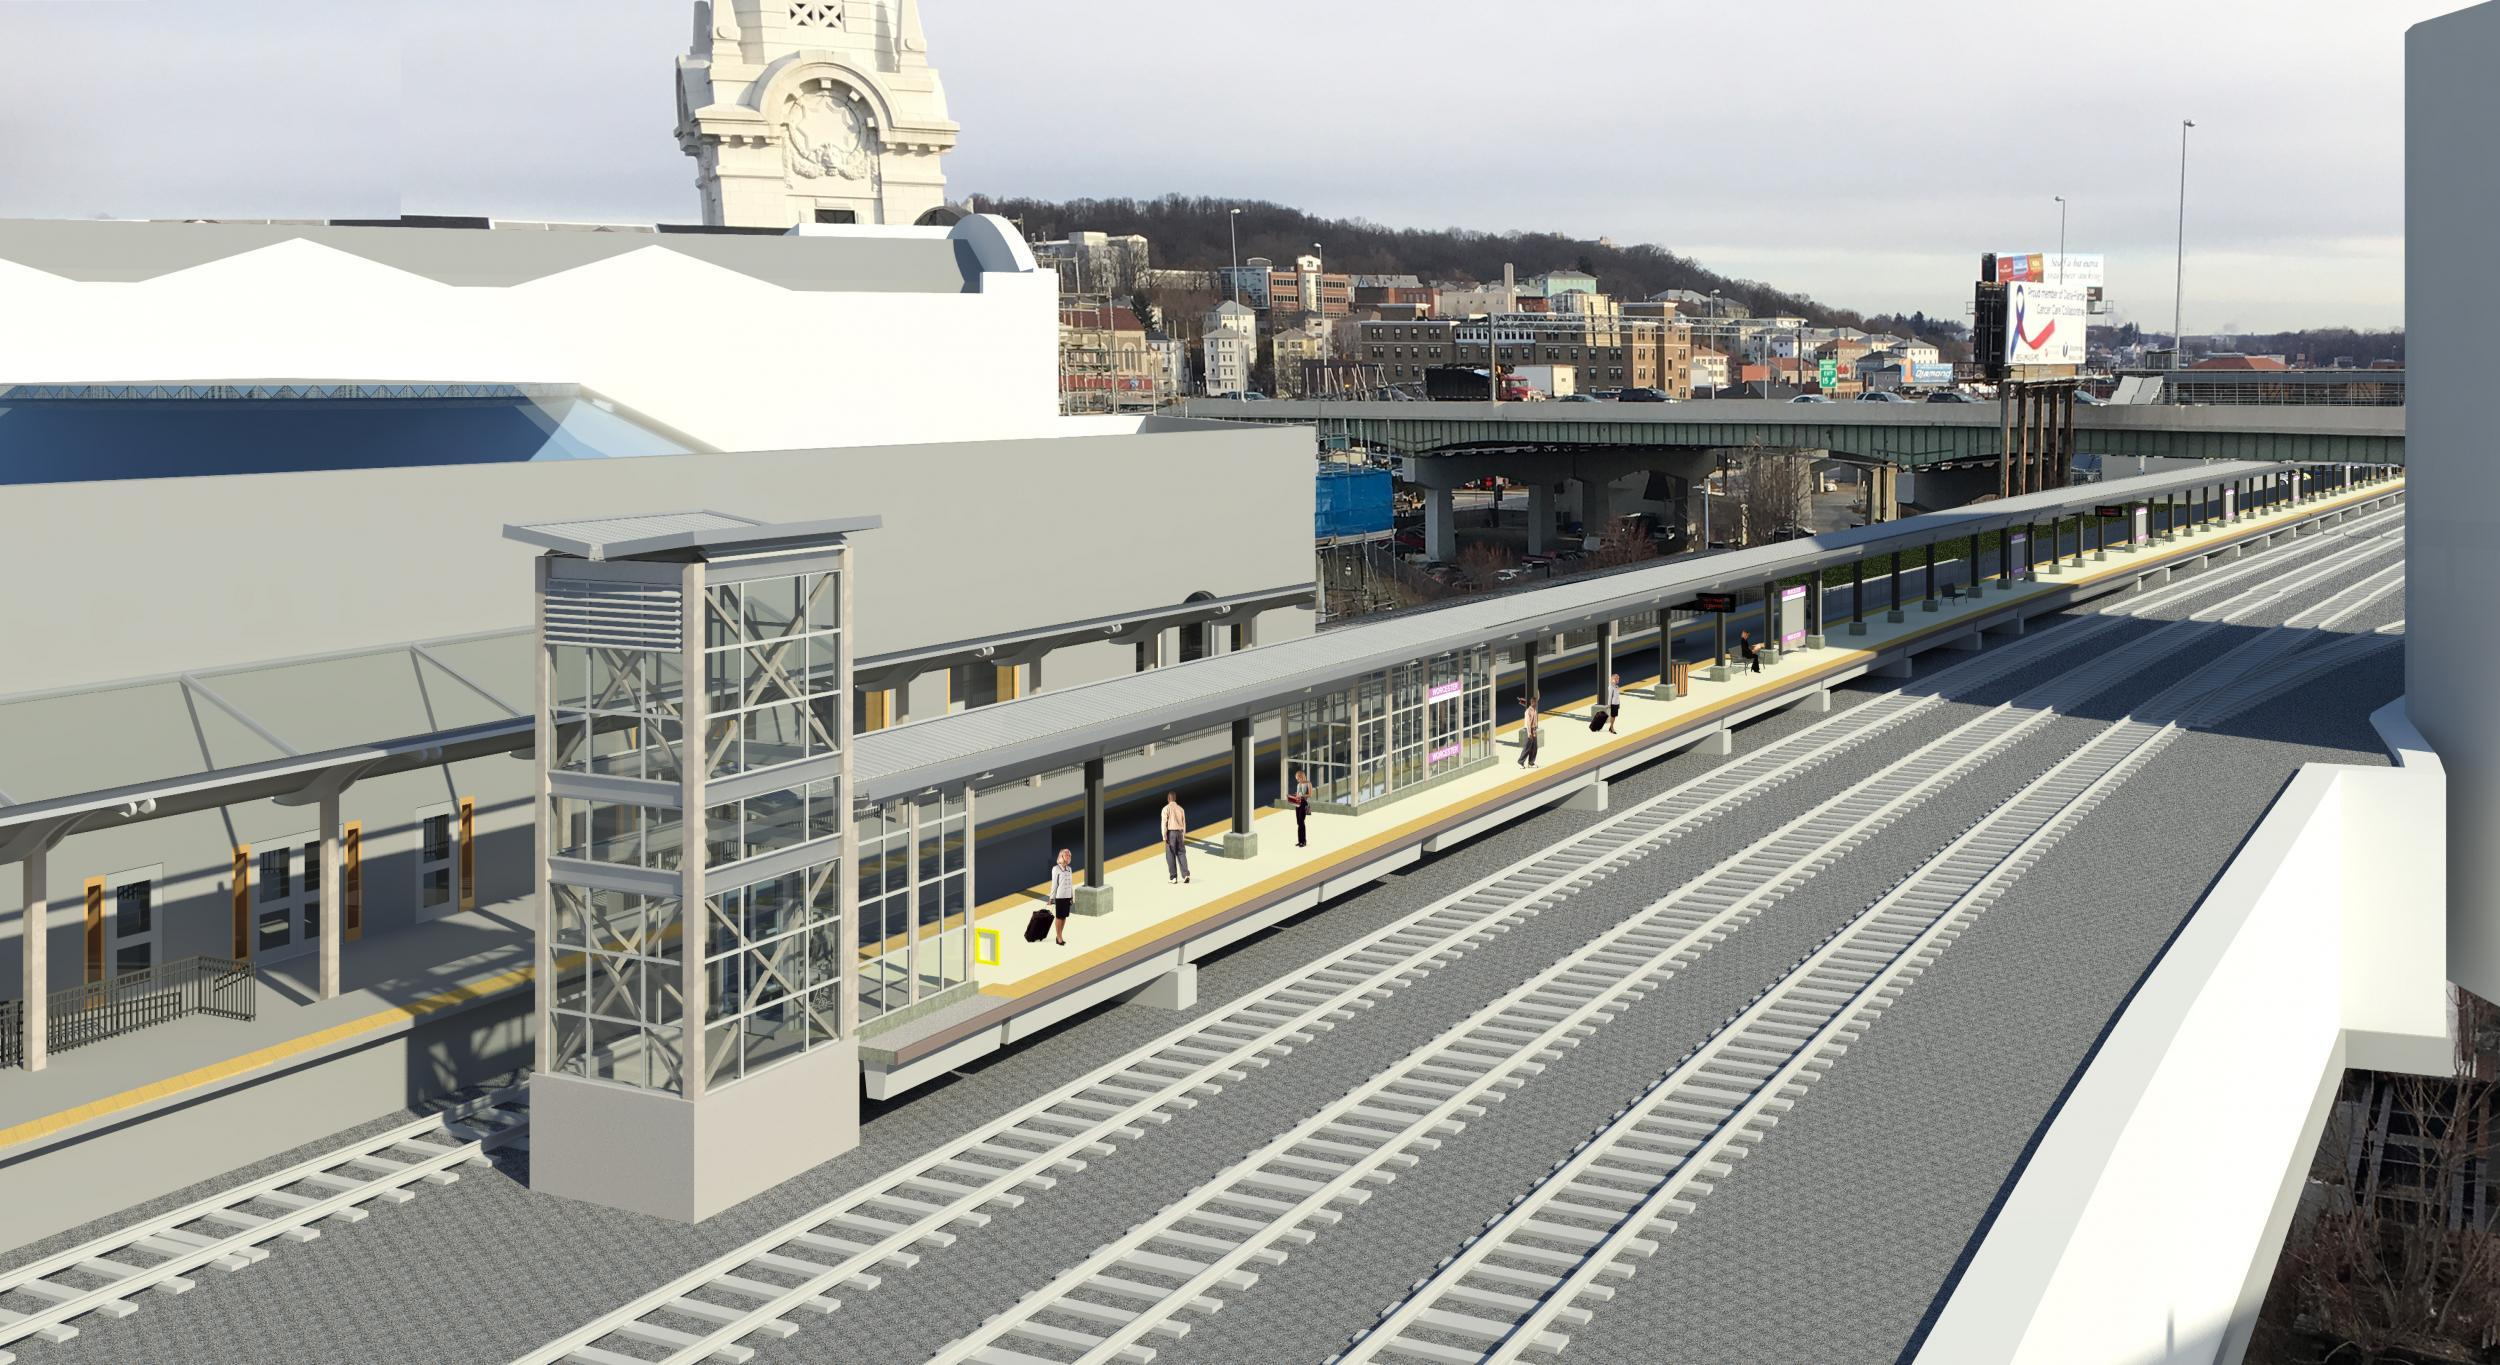 A rendering of the proposed changes at Worcester Station as viewed from the garage roof